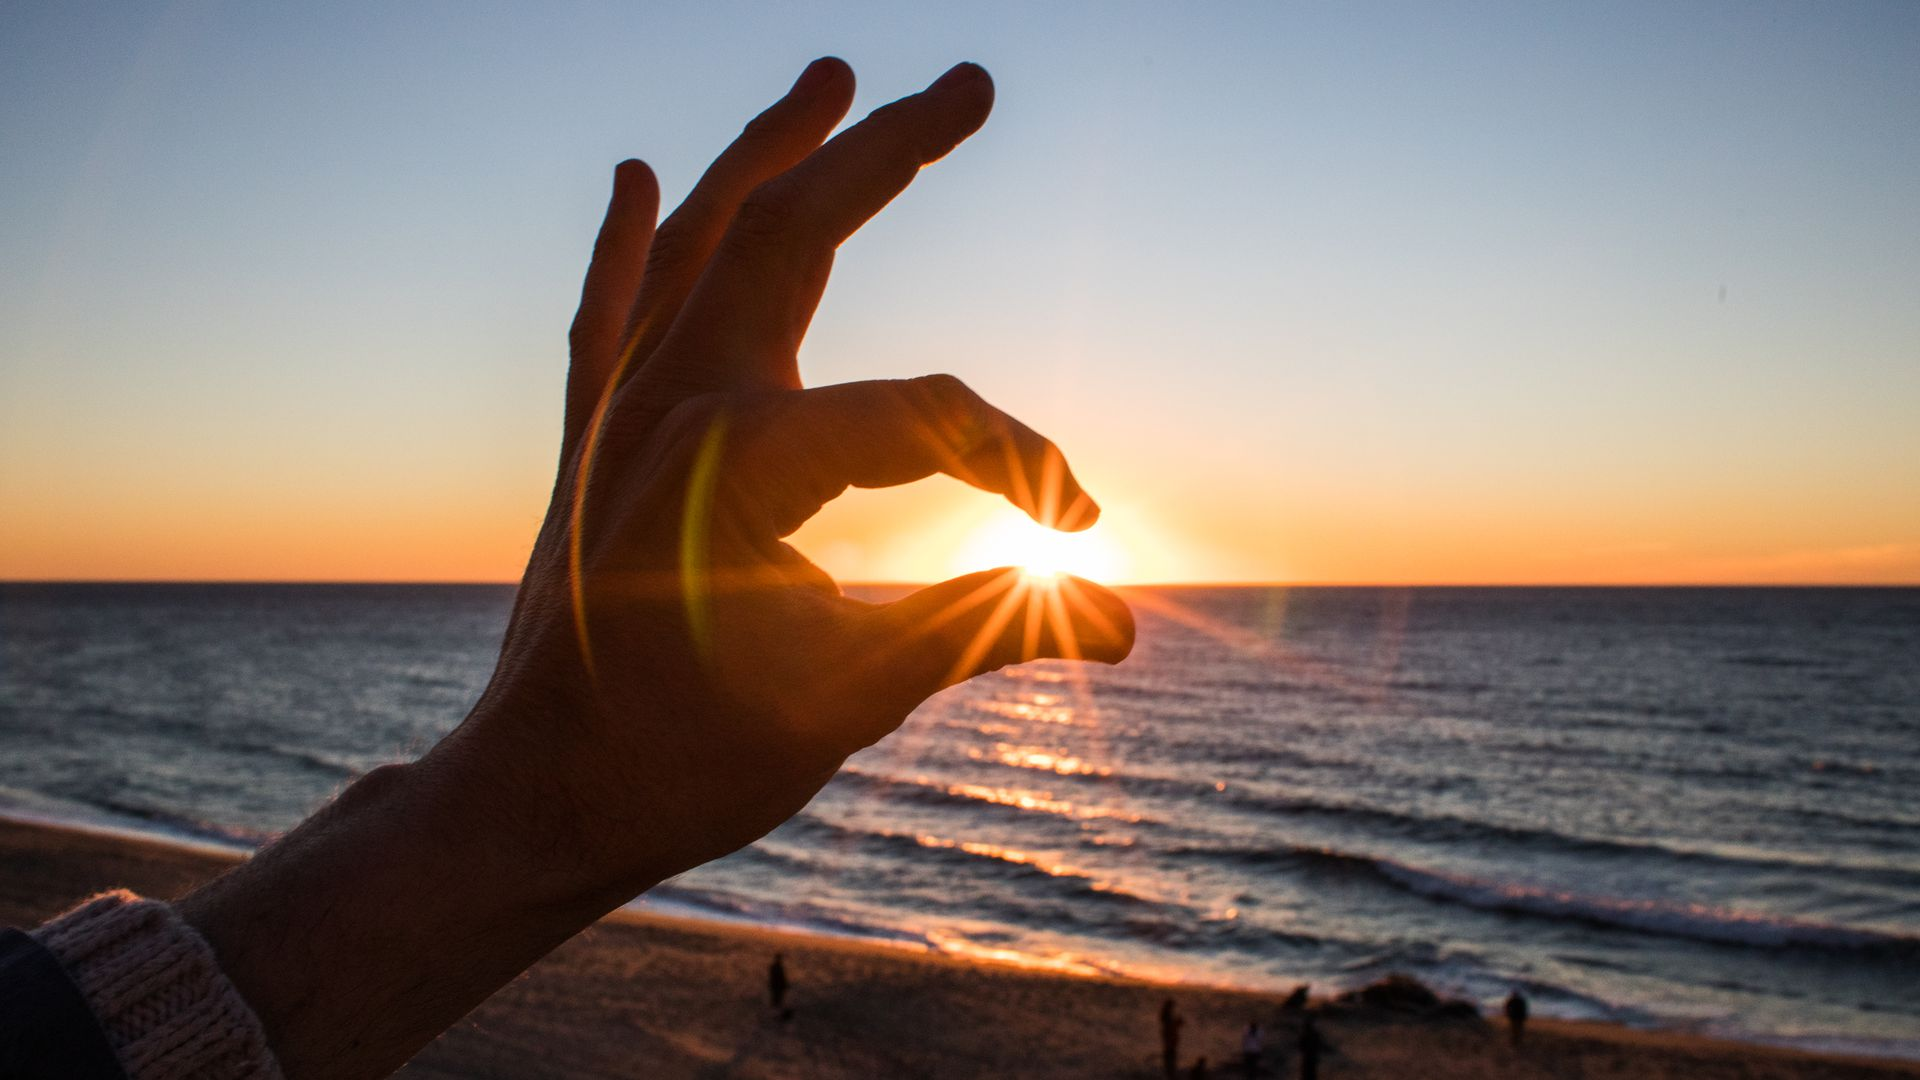 In this image, someone pretends to pinch the sun between two fingers as the sun sets at the beach.